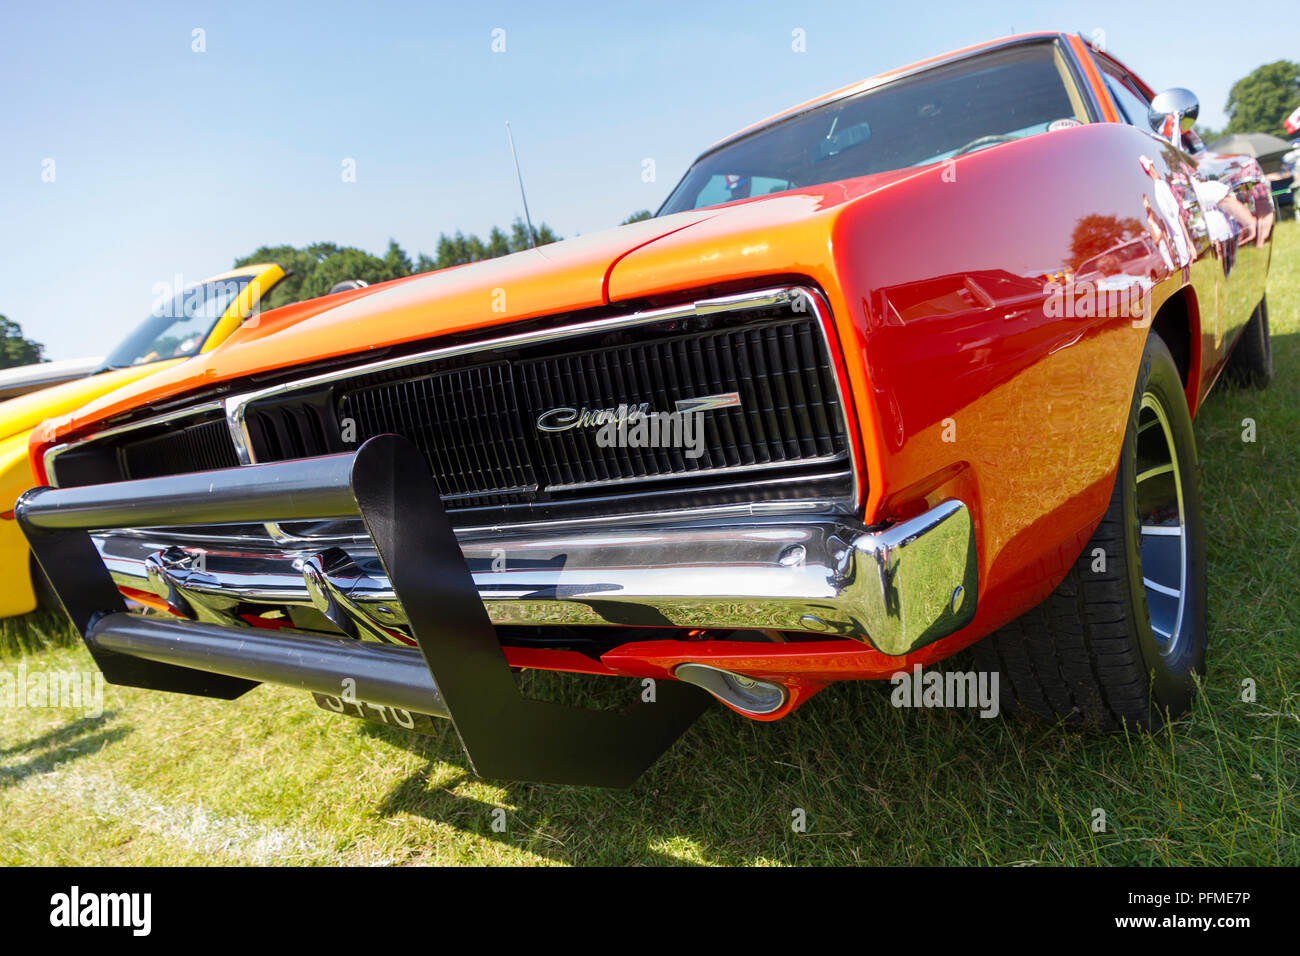 Dodge Charger - Stock Image